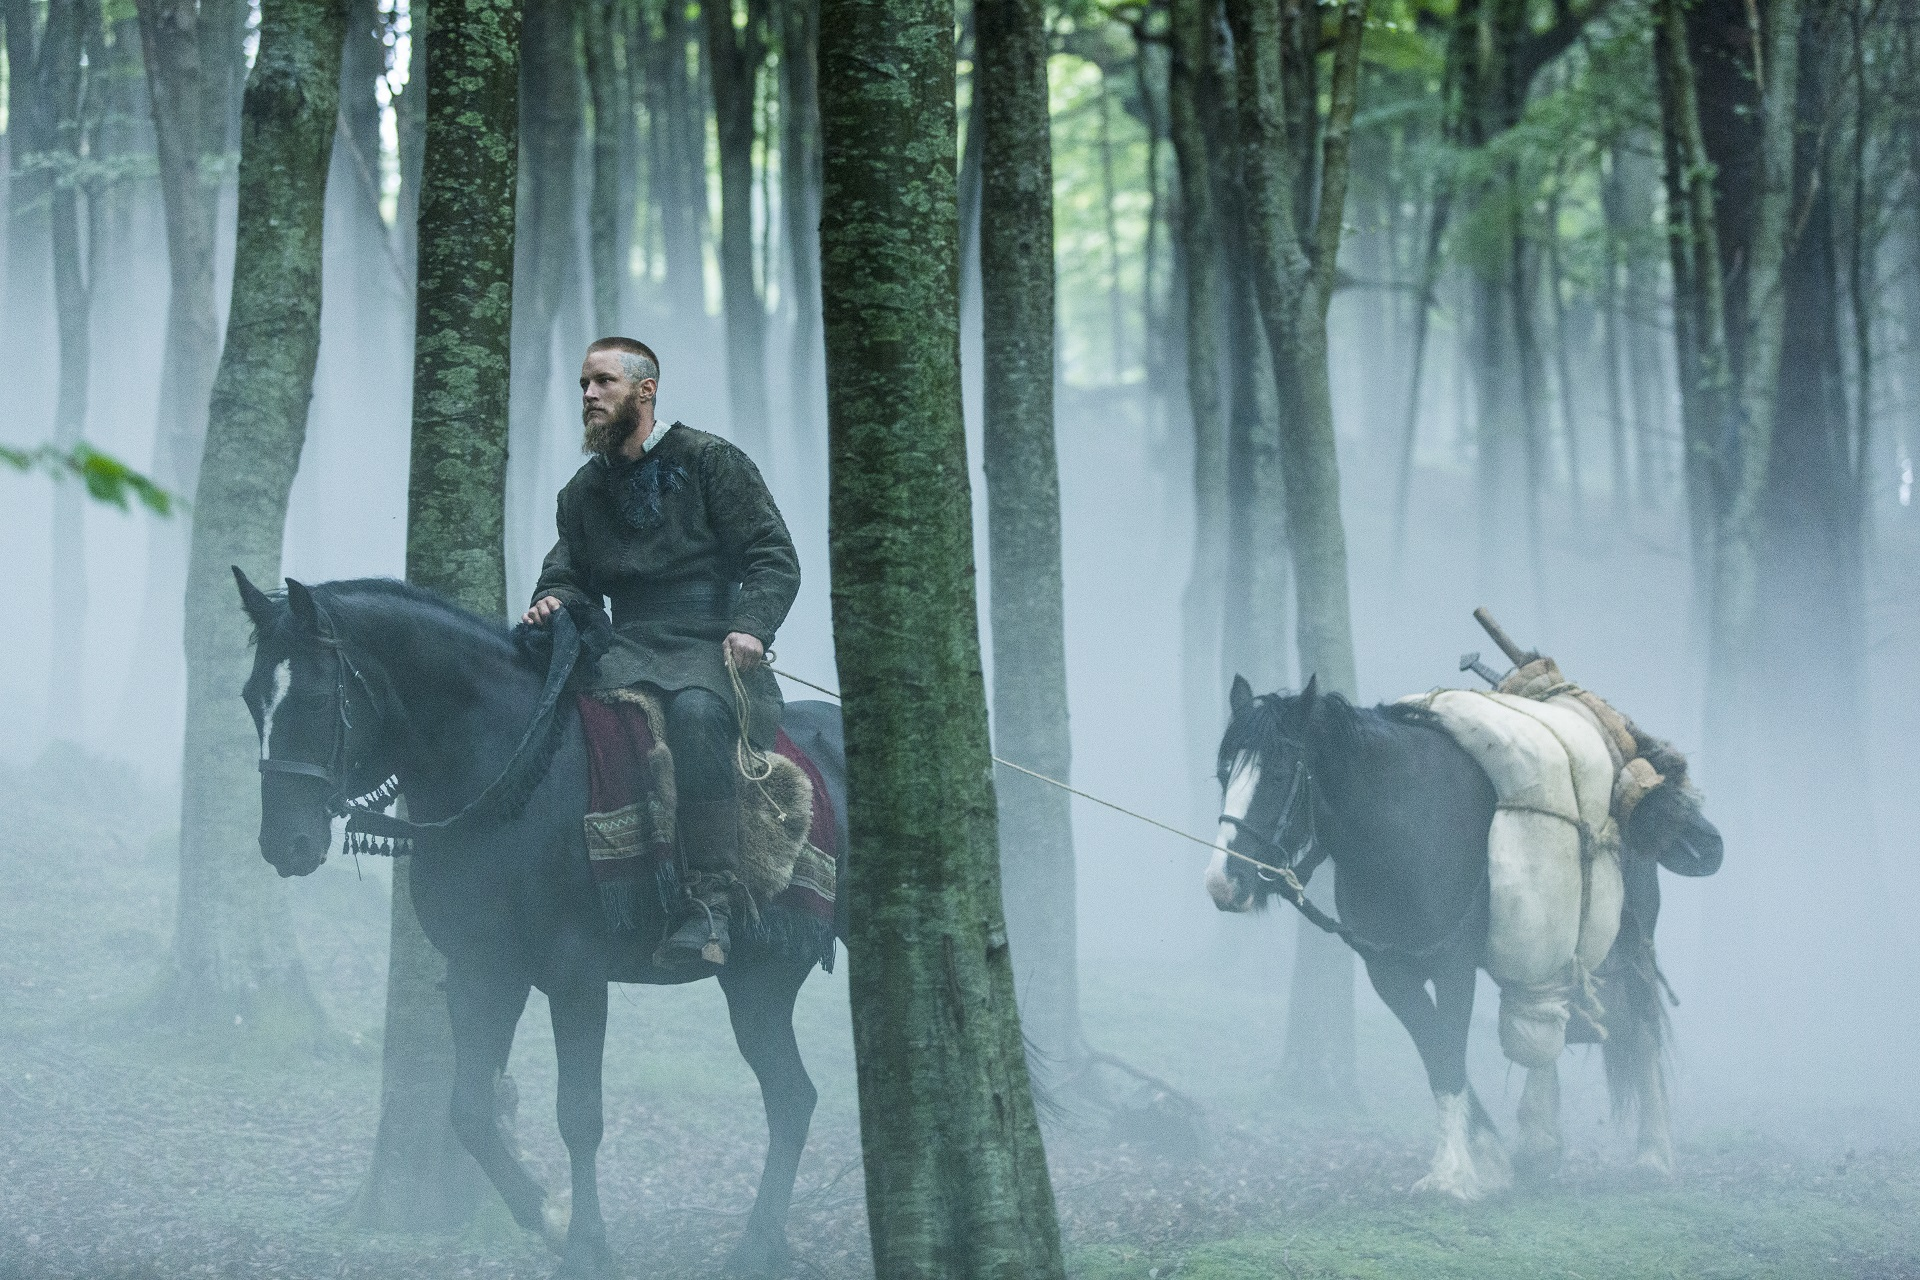 Ragnar Lothbrok (Travis Fimmel) buries Athelstan (George Blagden) in